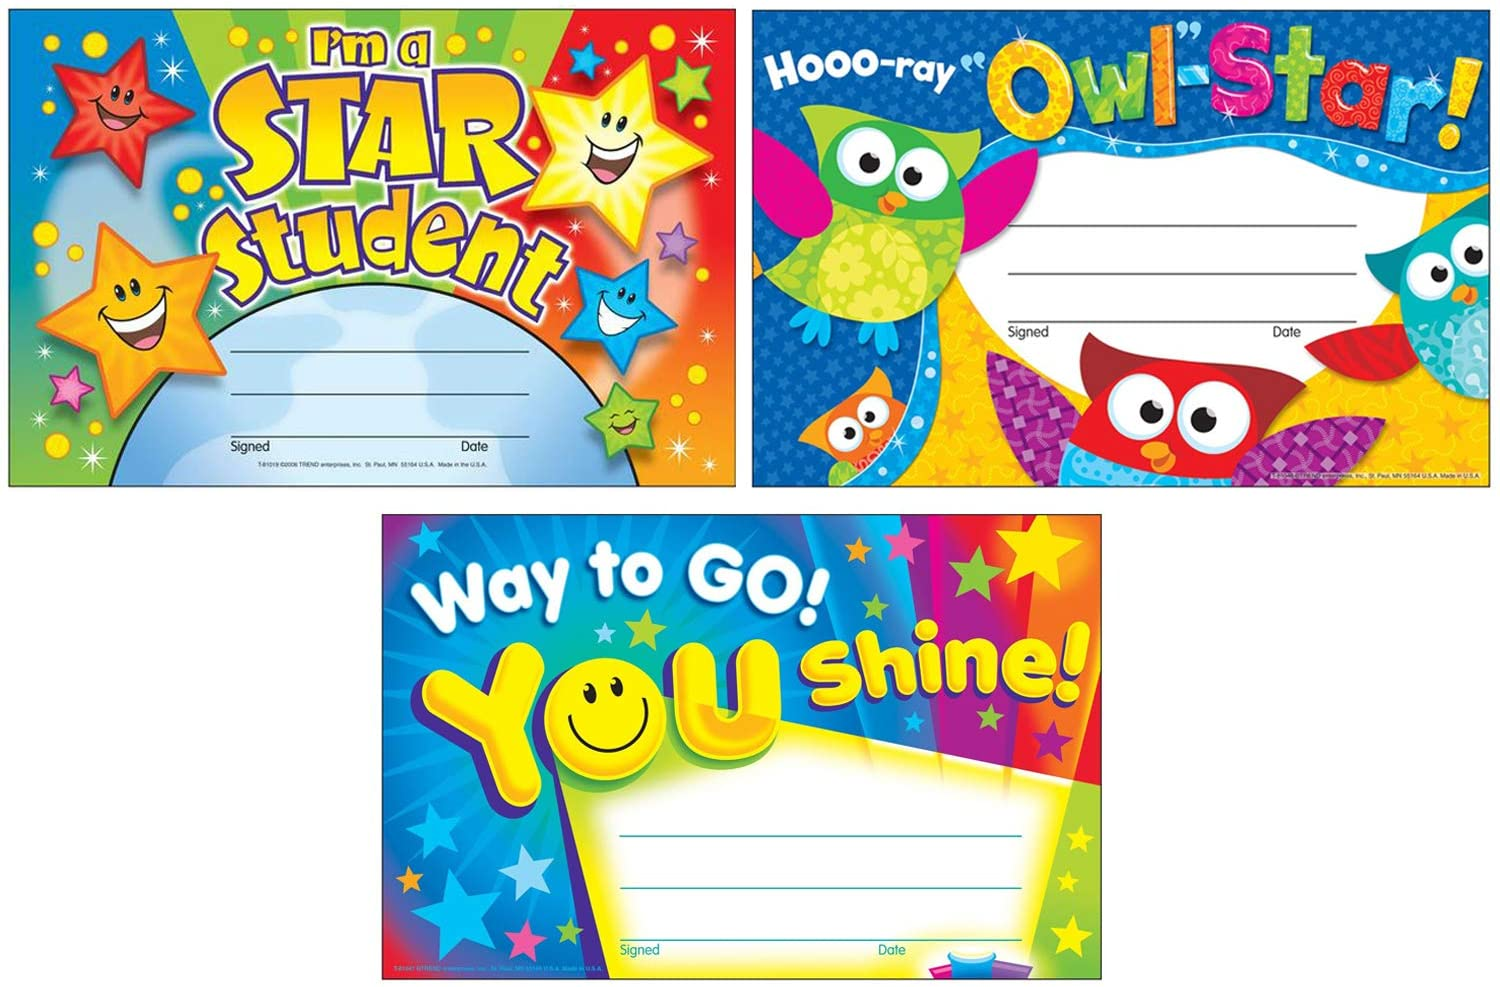 Colorful Recognition Award Certificates for Students and Professionals | I'm a Star Student, Hooo-ray Owl Stars, Way to Go You Shine | Set of 3 Items, Each Contains 30 Per Pack, 5.50 Inch x 8.50 Inch